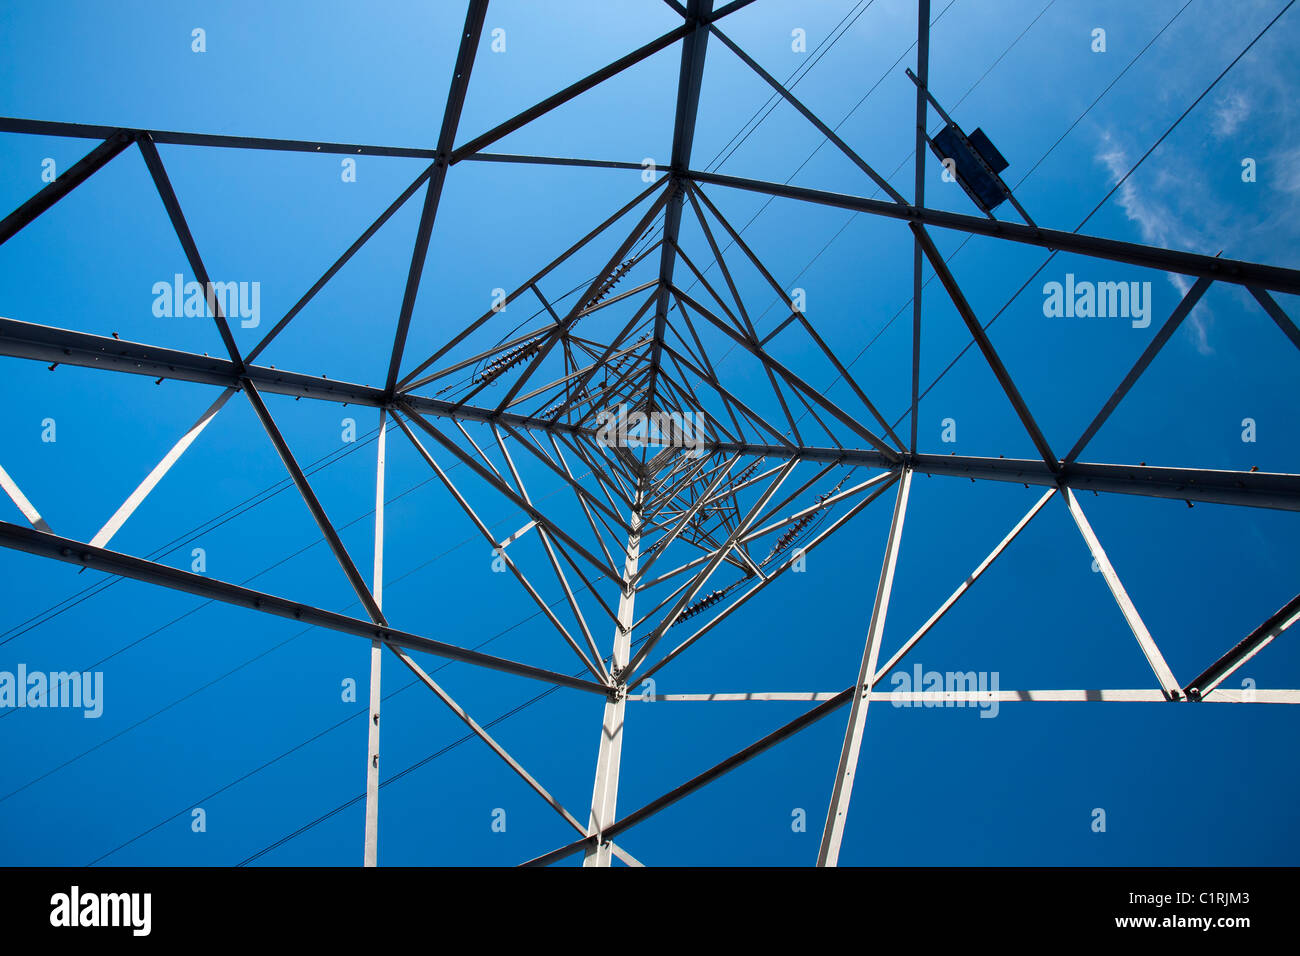 A power line pylon. - Stock Image